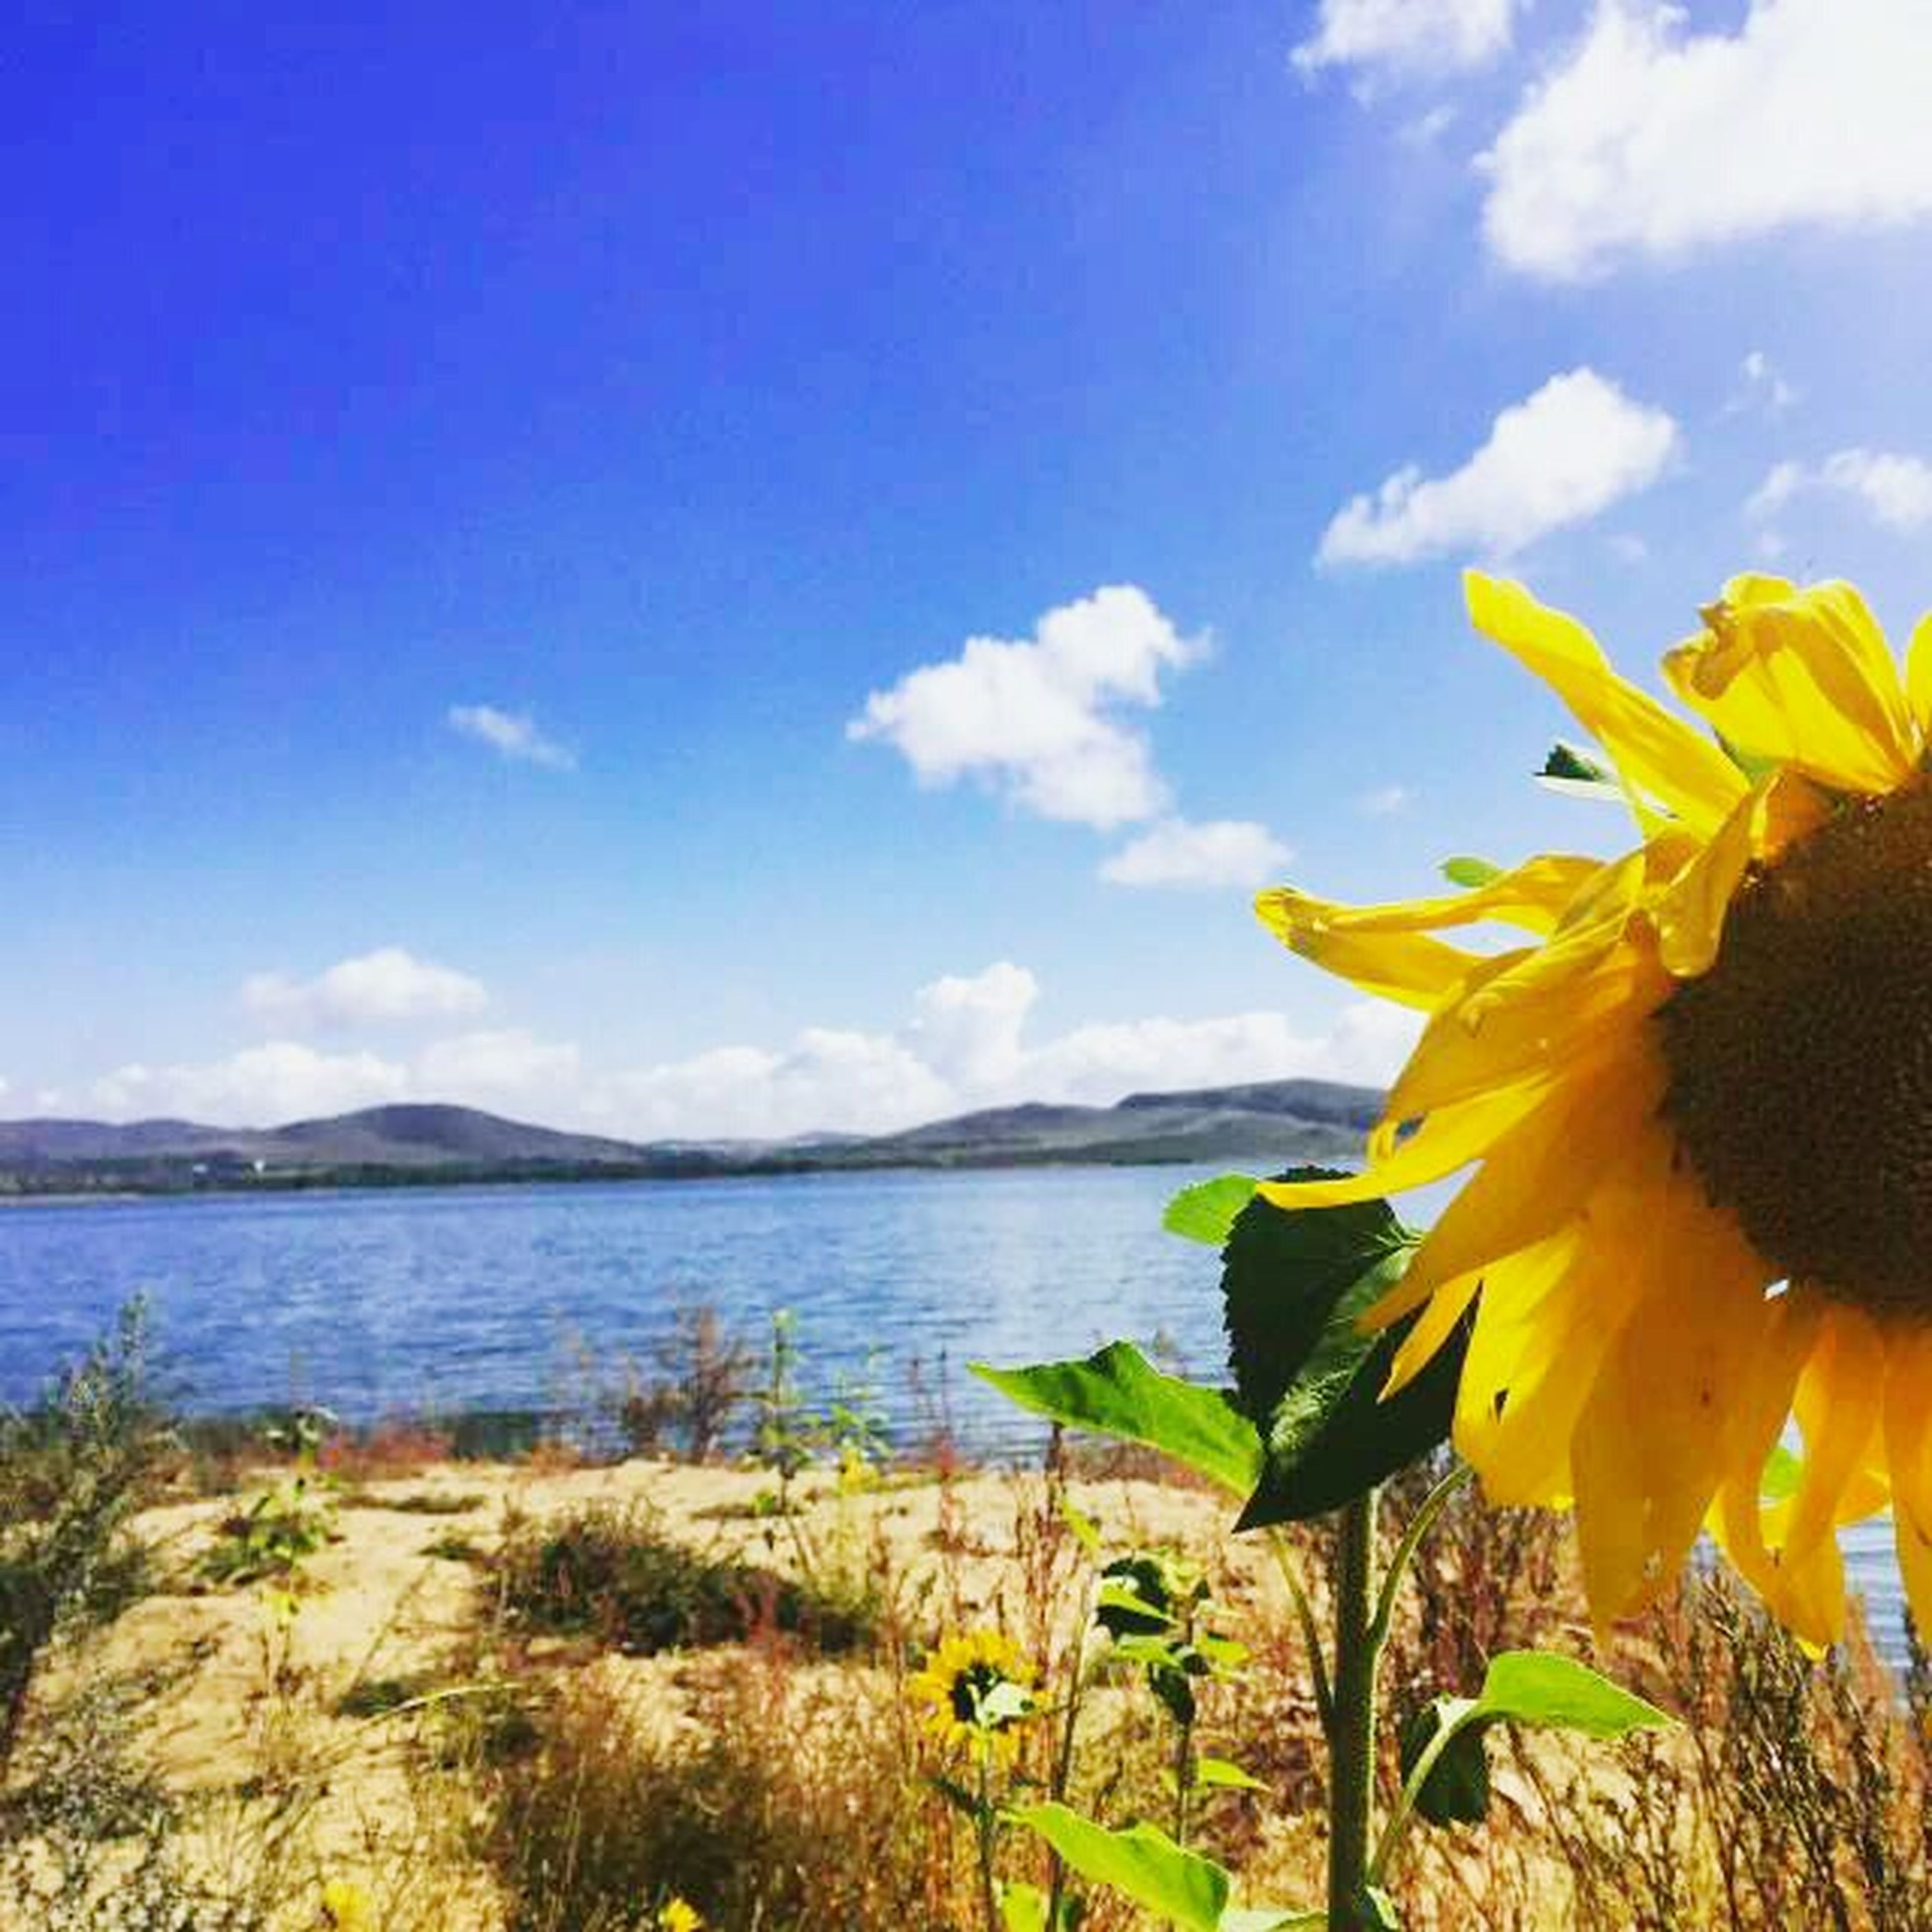 sky, beauty in nature, flower, tranquility, tranquil scene, nature, yellow, scenics, plant, cloud - sky, growth, blue, cloud, water, sea, field, landscape, idyllic, day, outdoors